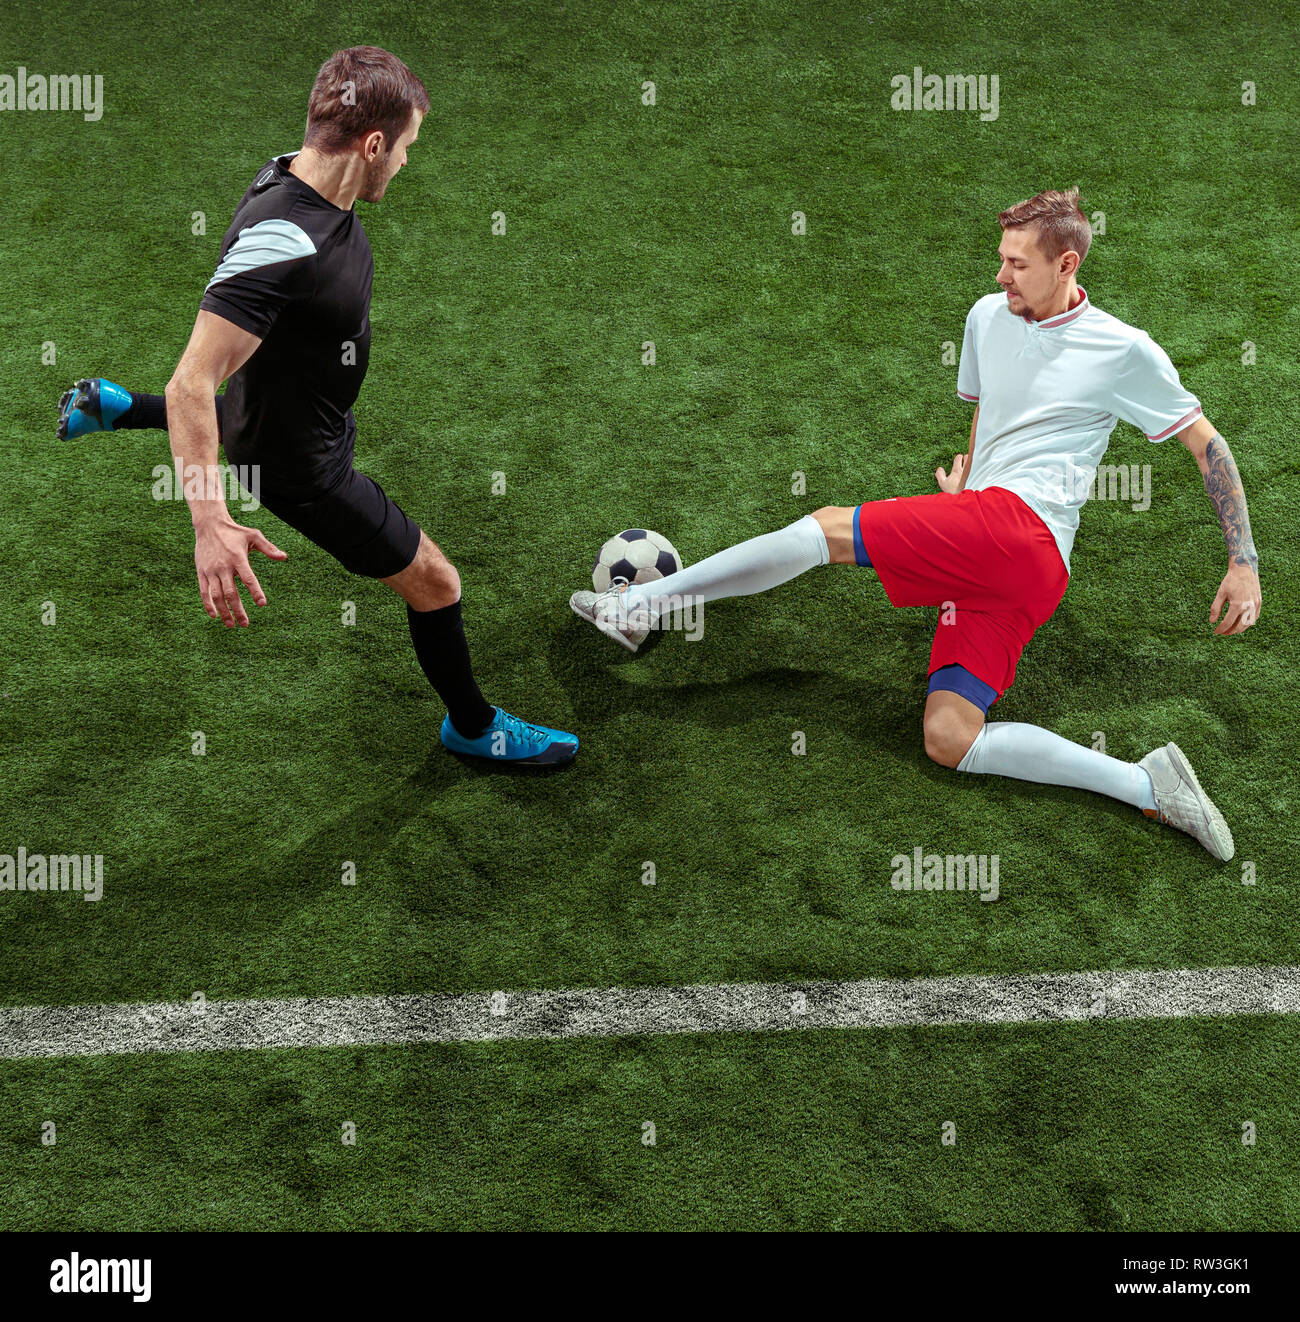 Football player tackling for ball over green grass background. Professional  male soccer players in motion at stadium. Fit jumping men in action de01619c8a1